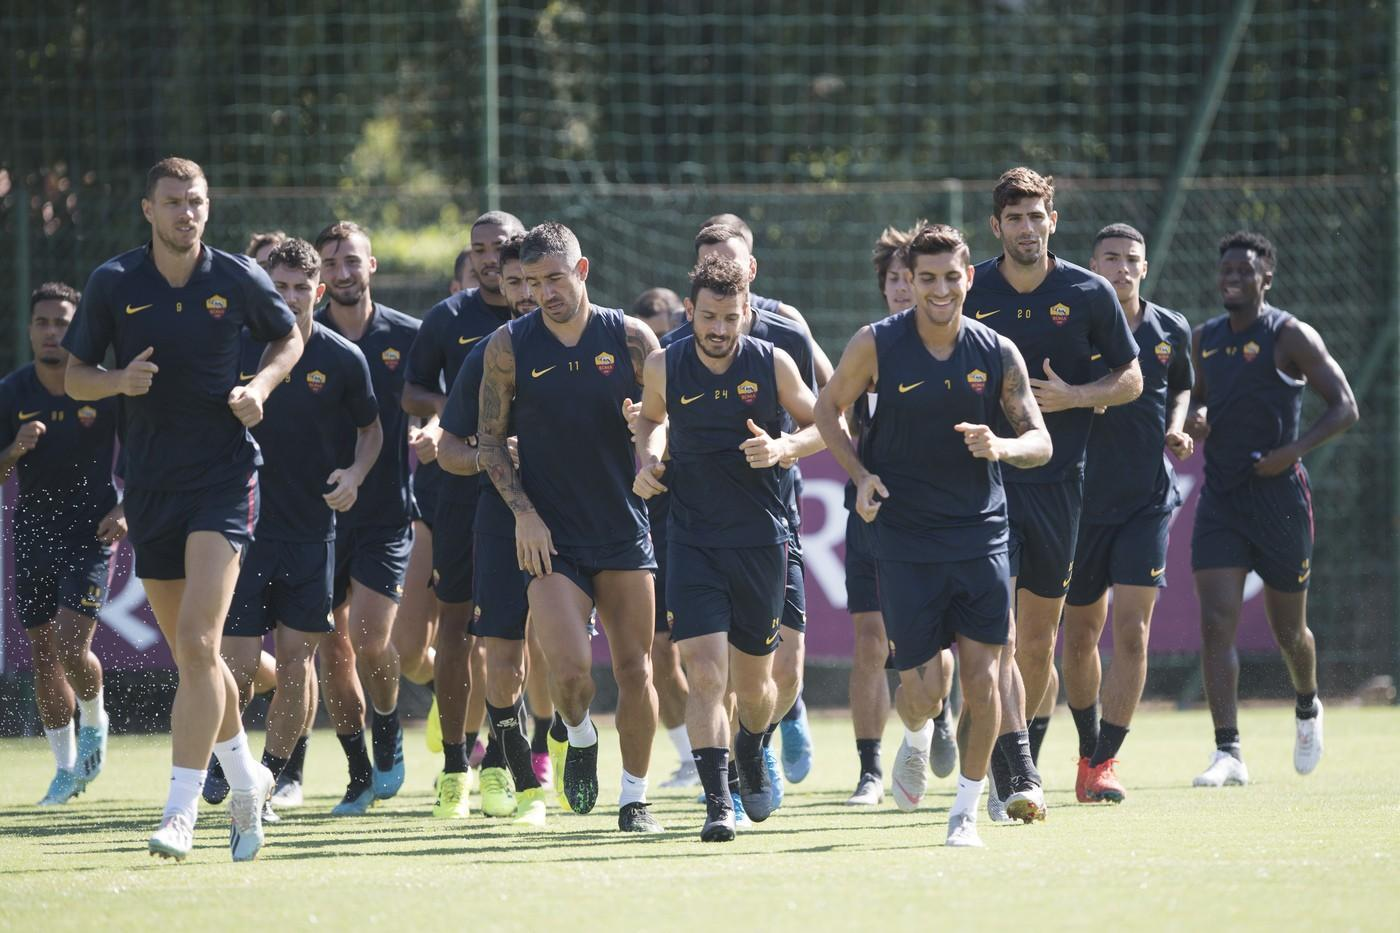 Trigoria, rifinitura in vista del match di Europa League. Lavoro individuale per Smalling©LaPresse